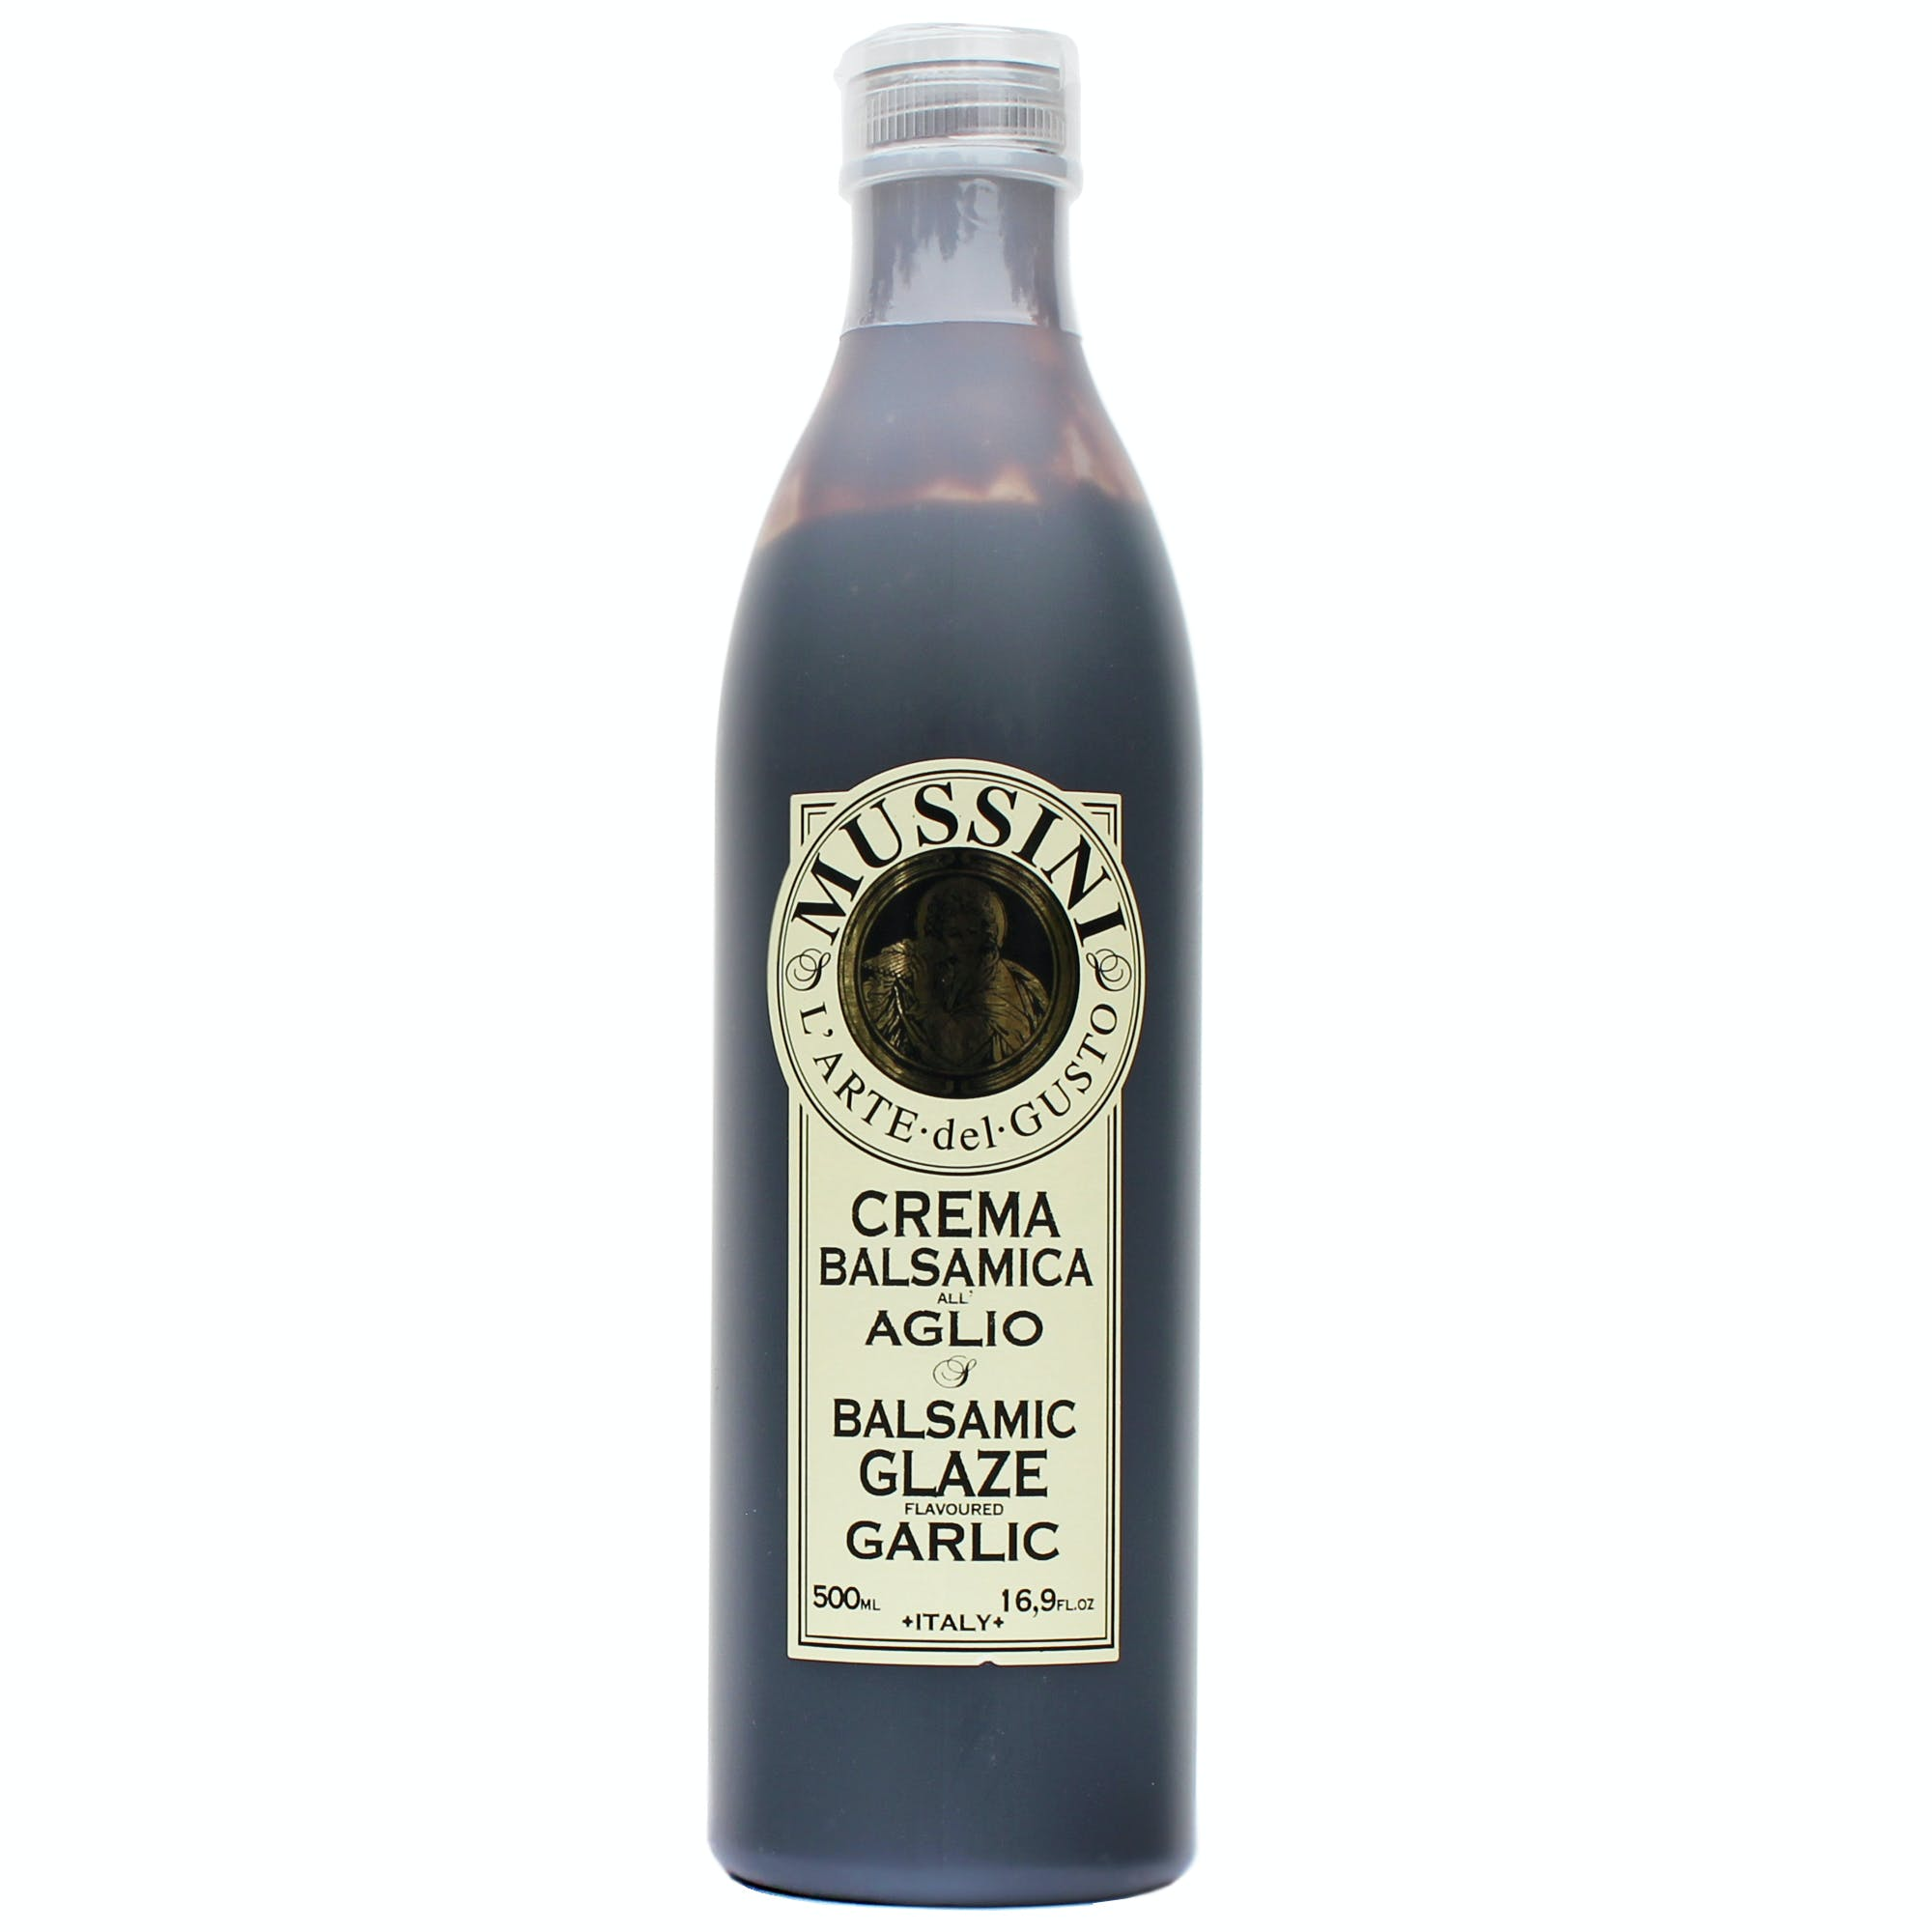 Italian Garlic  Balsamic Glazes From Mussini, 16.9 Ounces Balsamic Vinegar sold by M5 Corporation